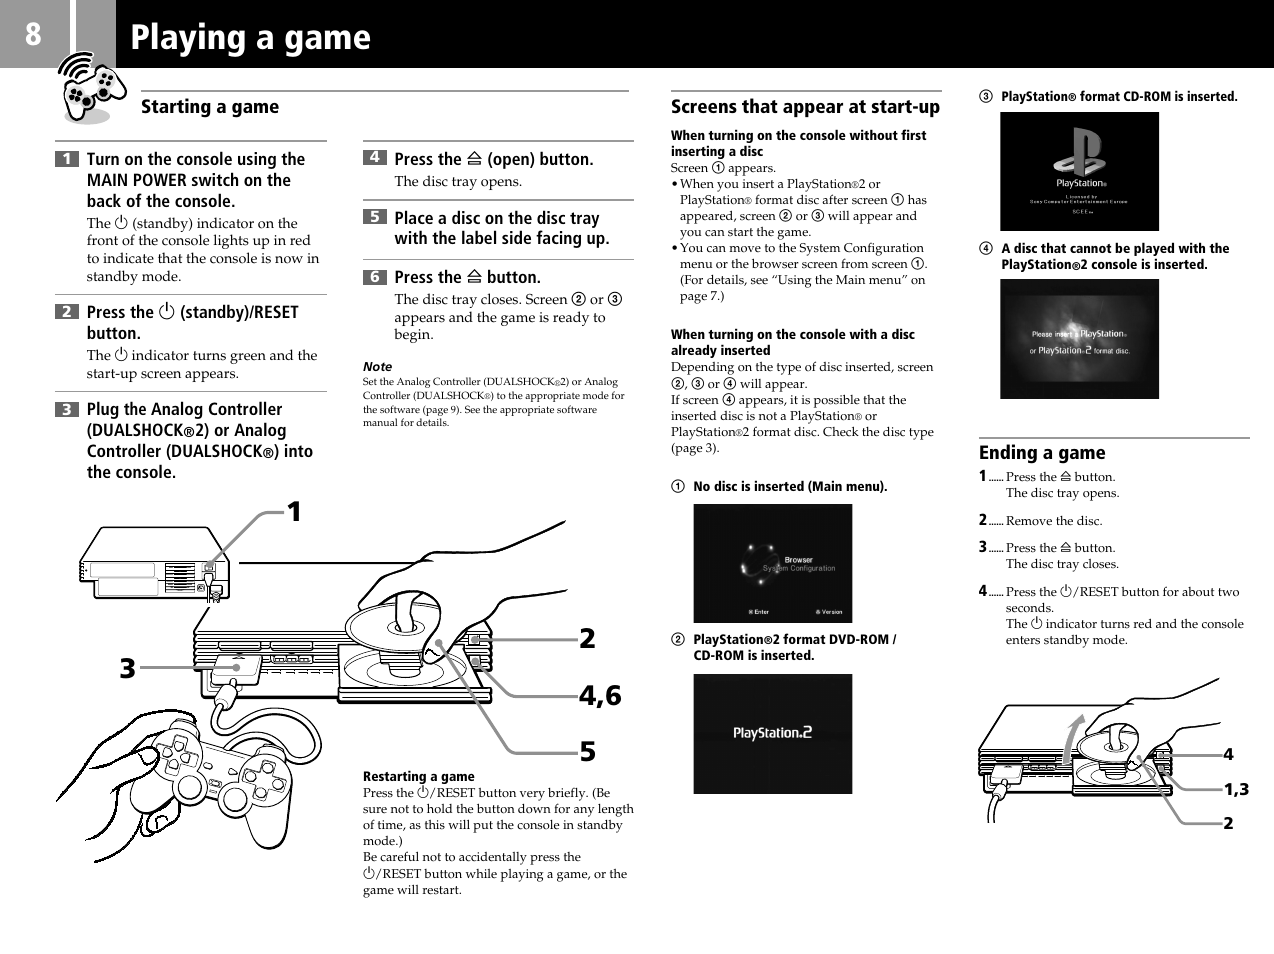 playing a game sony ps2 scph 39002 user manual page 8 24 rh manualsdir com Sony Wireless Headphones Manual Sony Manuals PDF